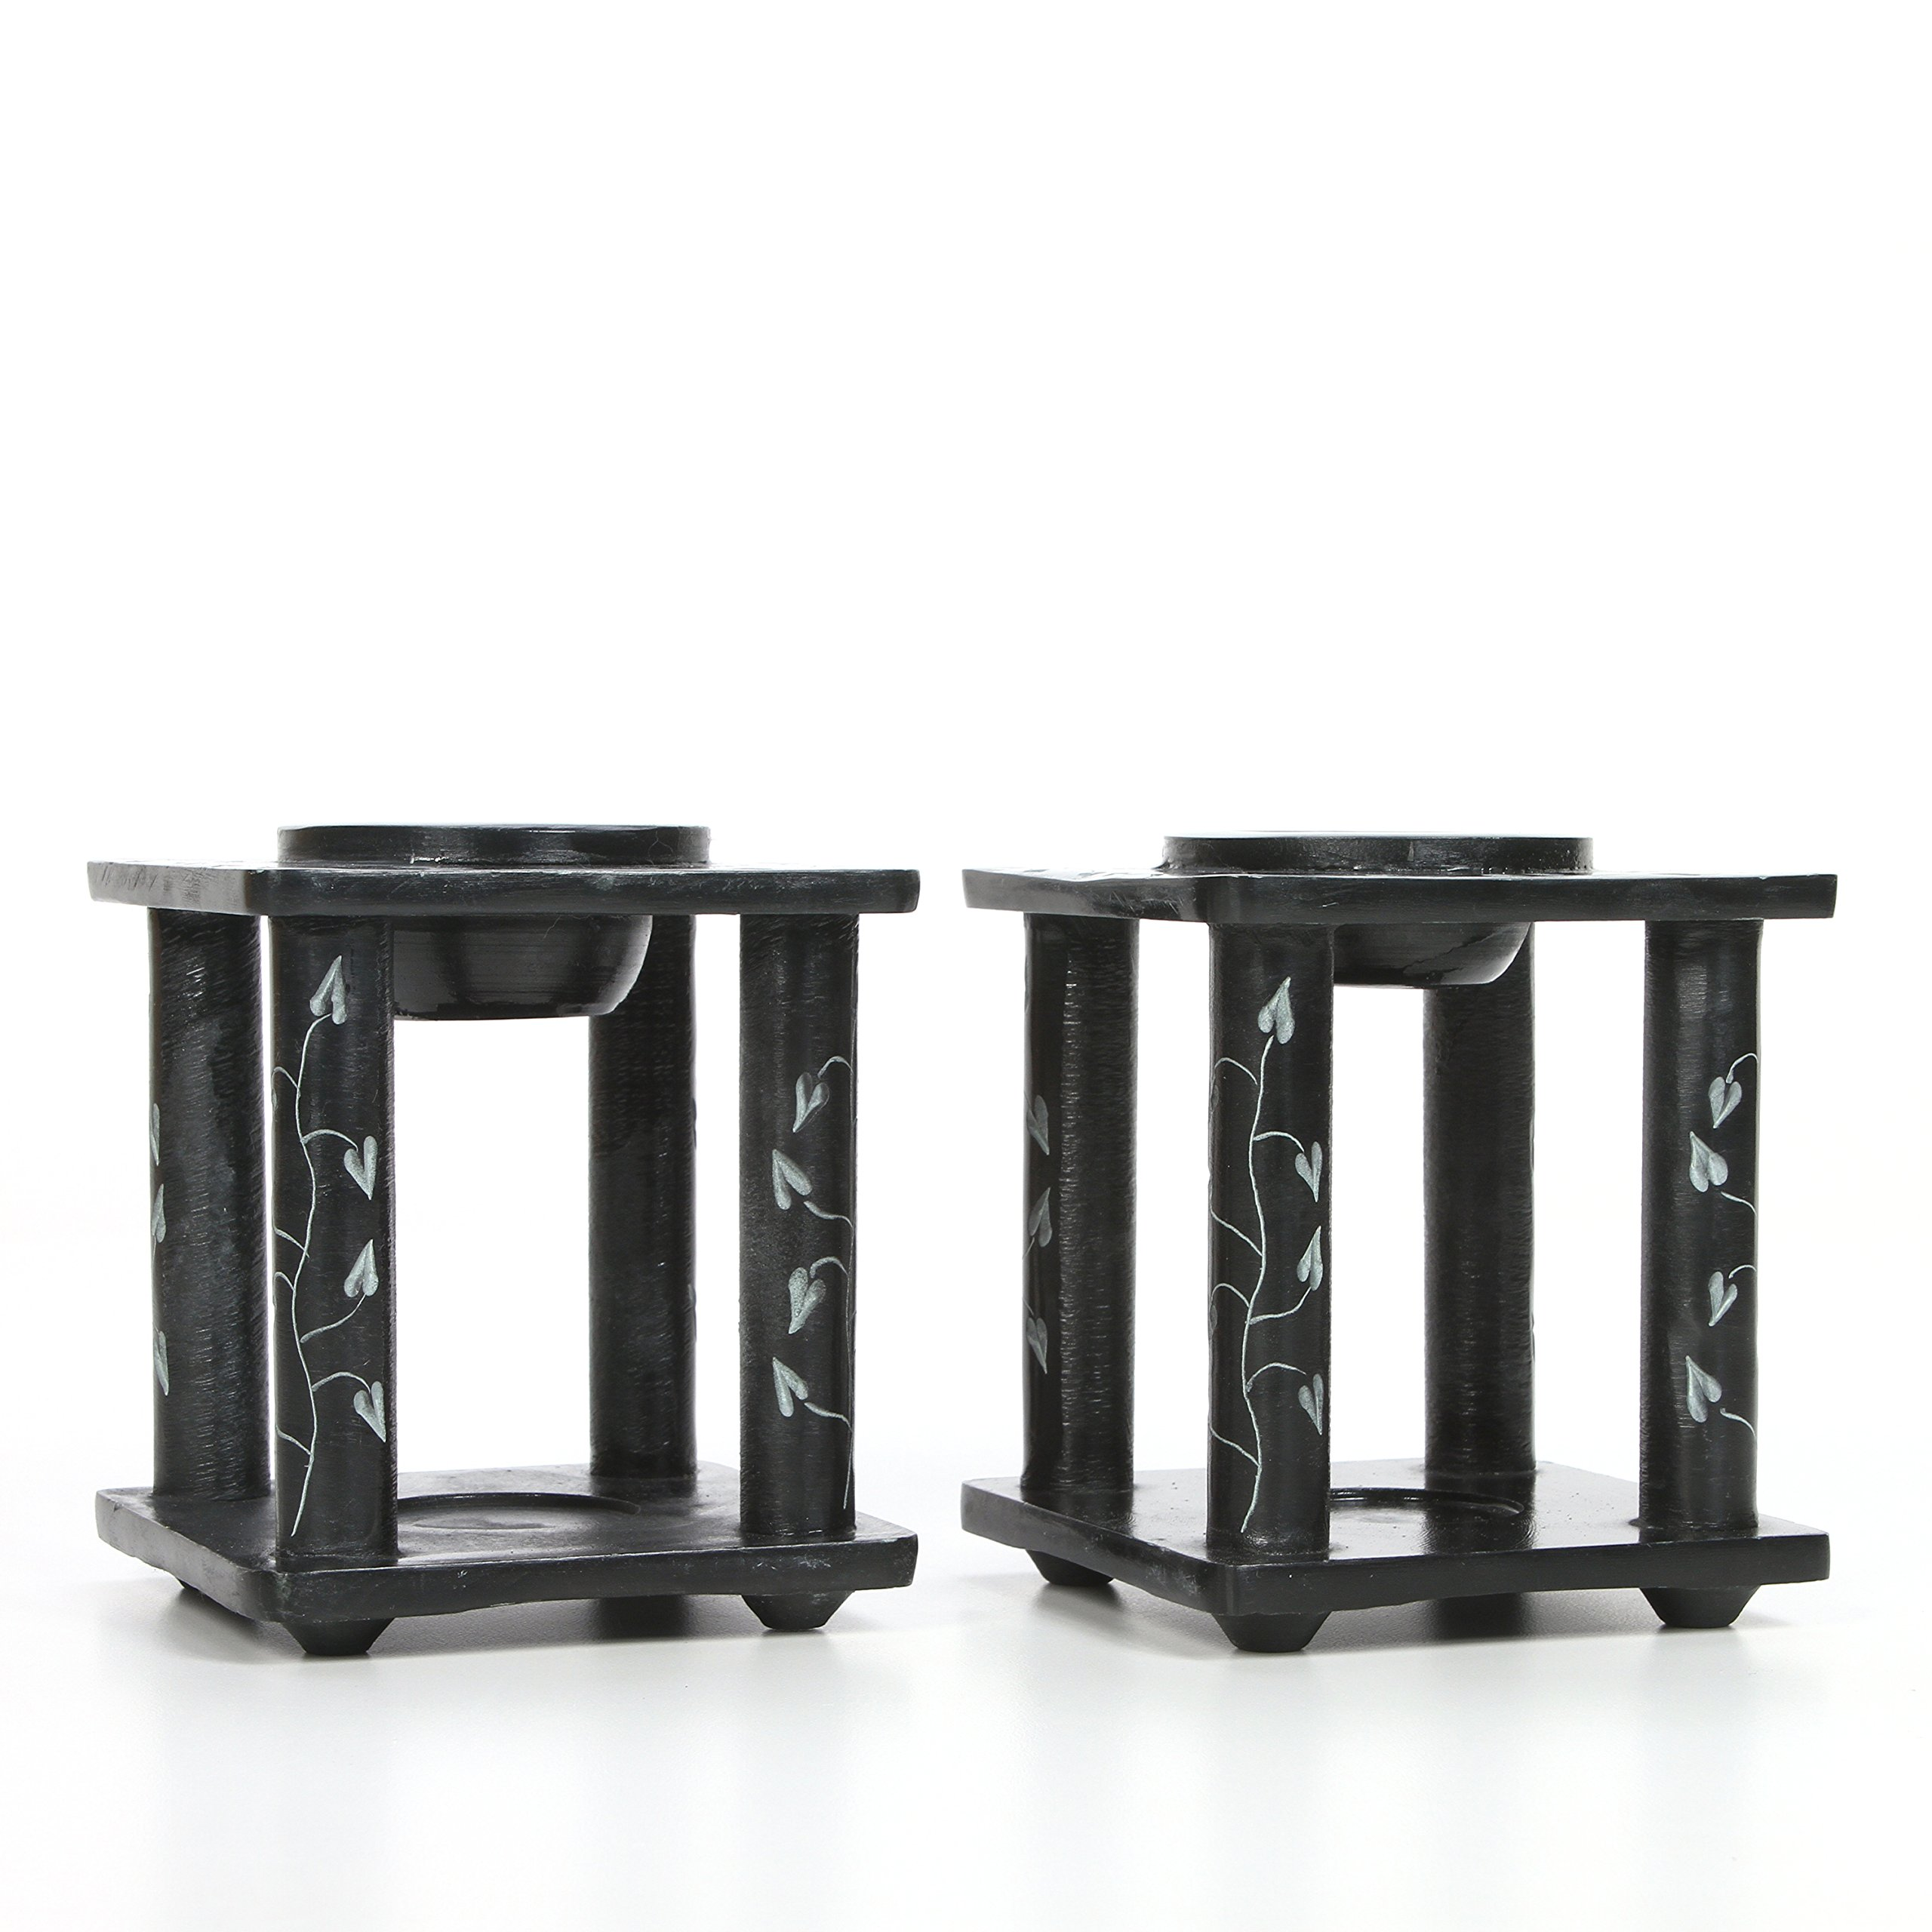 Hosley Set of 2 Black Soapstone Oil Burner- 4'' High. Ideal for Spa and Aromatherapy. Use with Brand Wax Melts/Cubes, Essential Oils and Fragrance Oils. O5